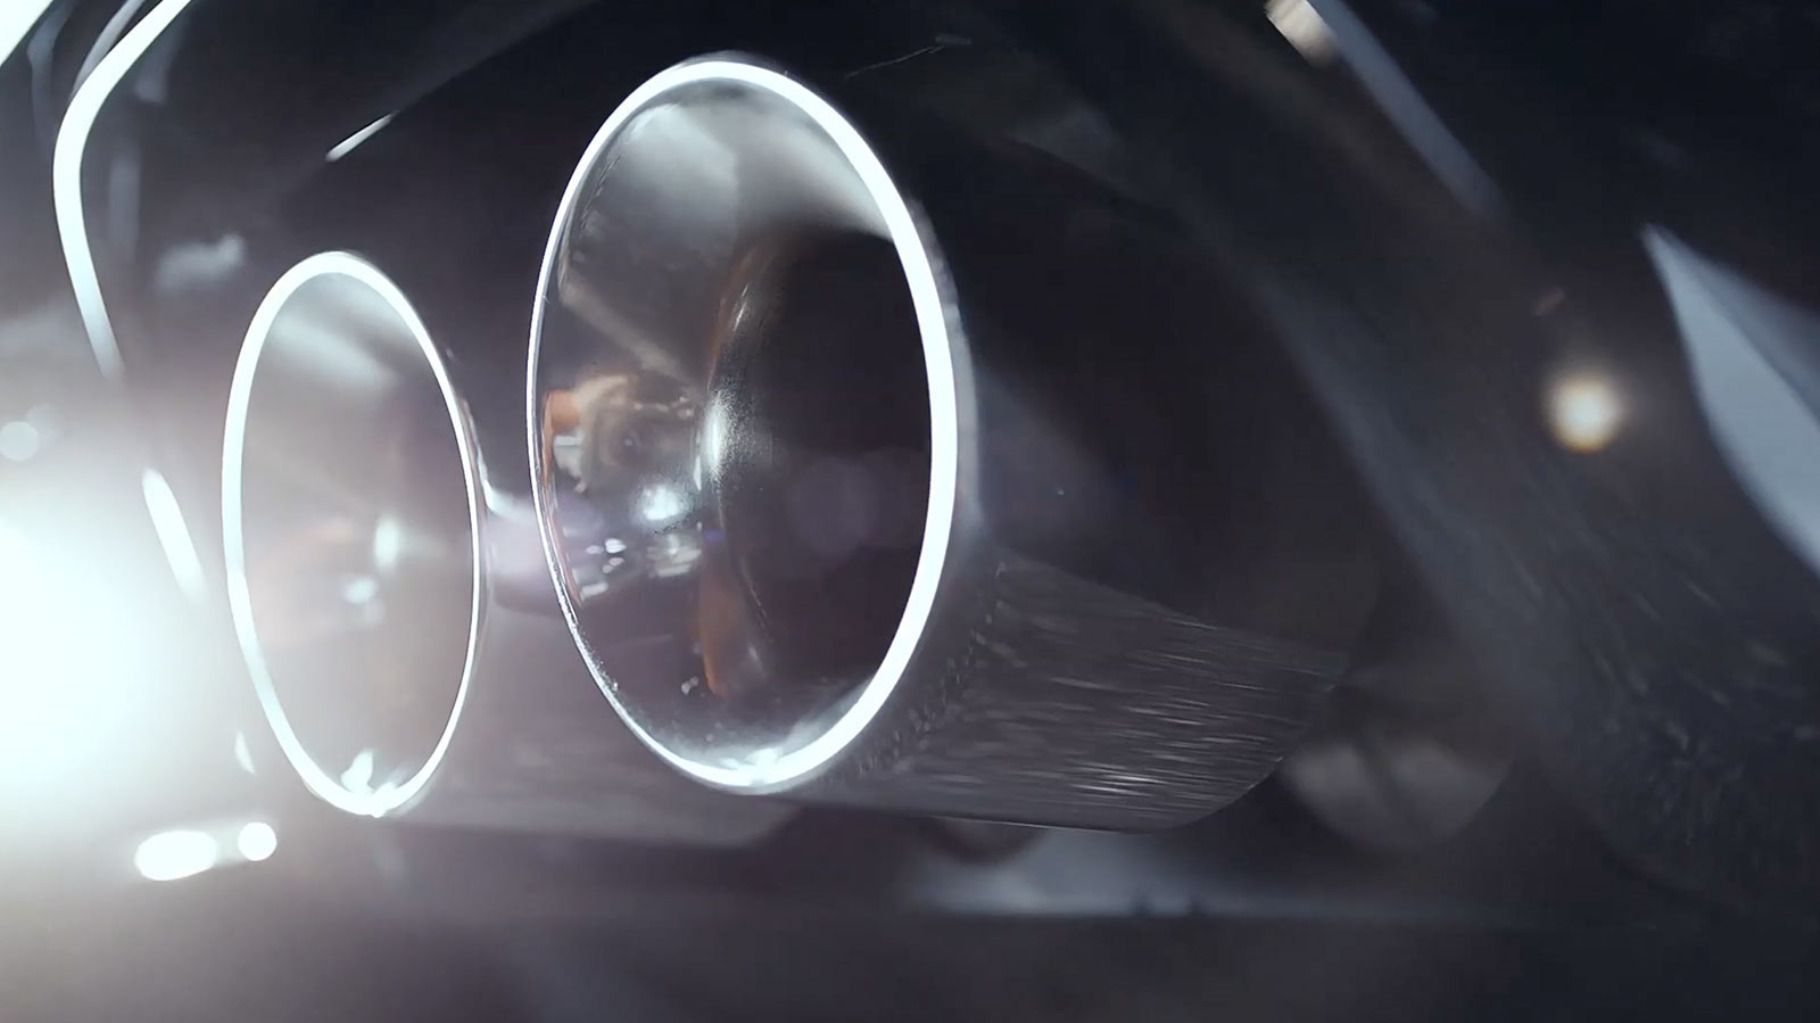 Close up of a jaguar f-type dual exhaust pipes.